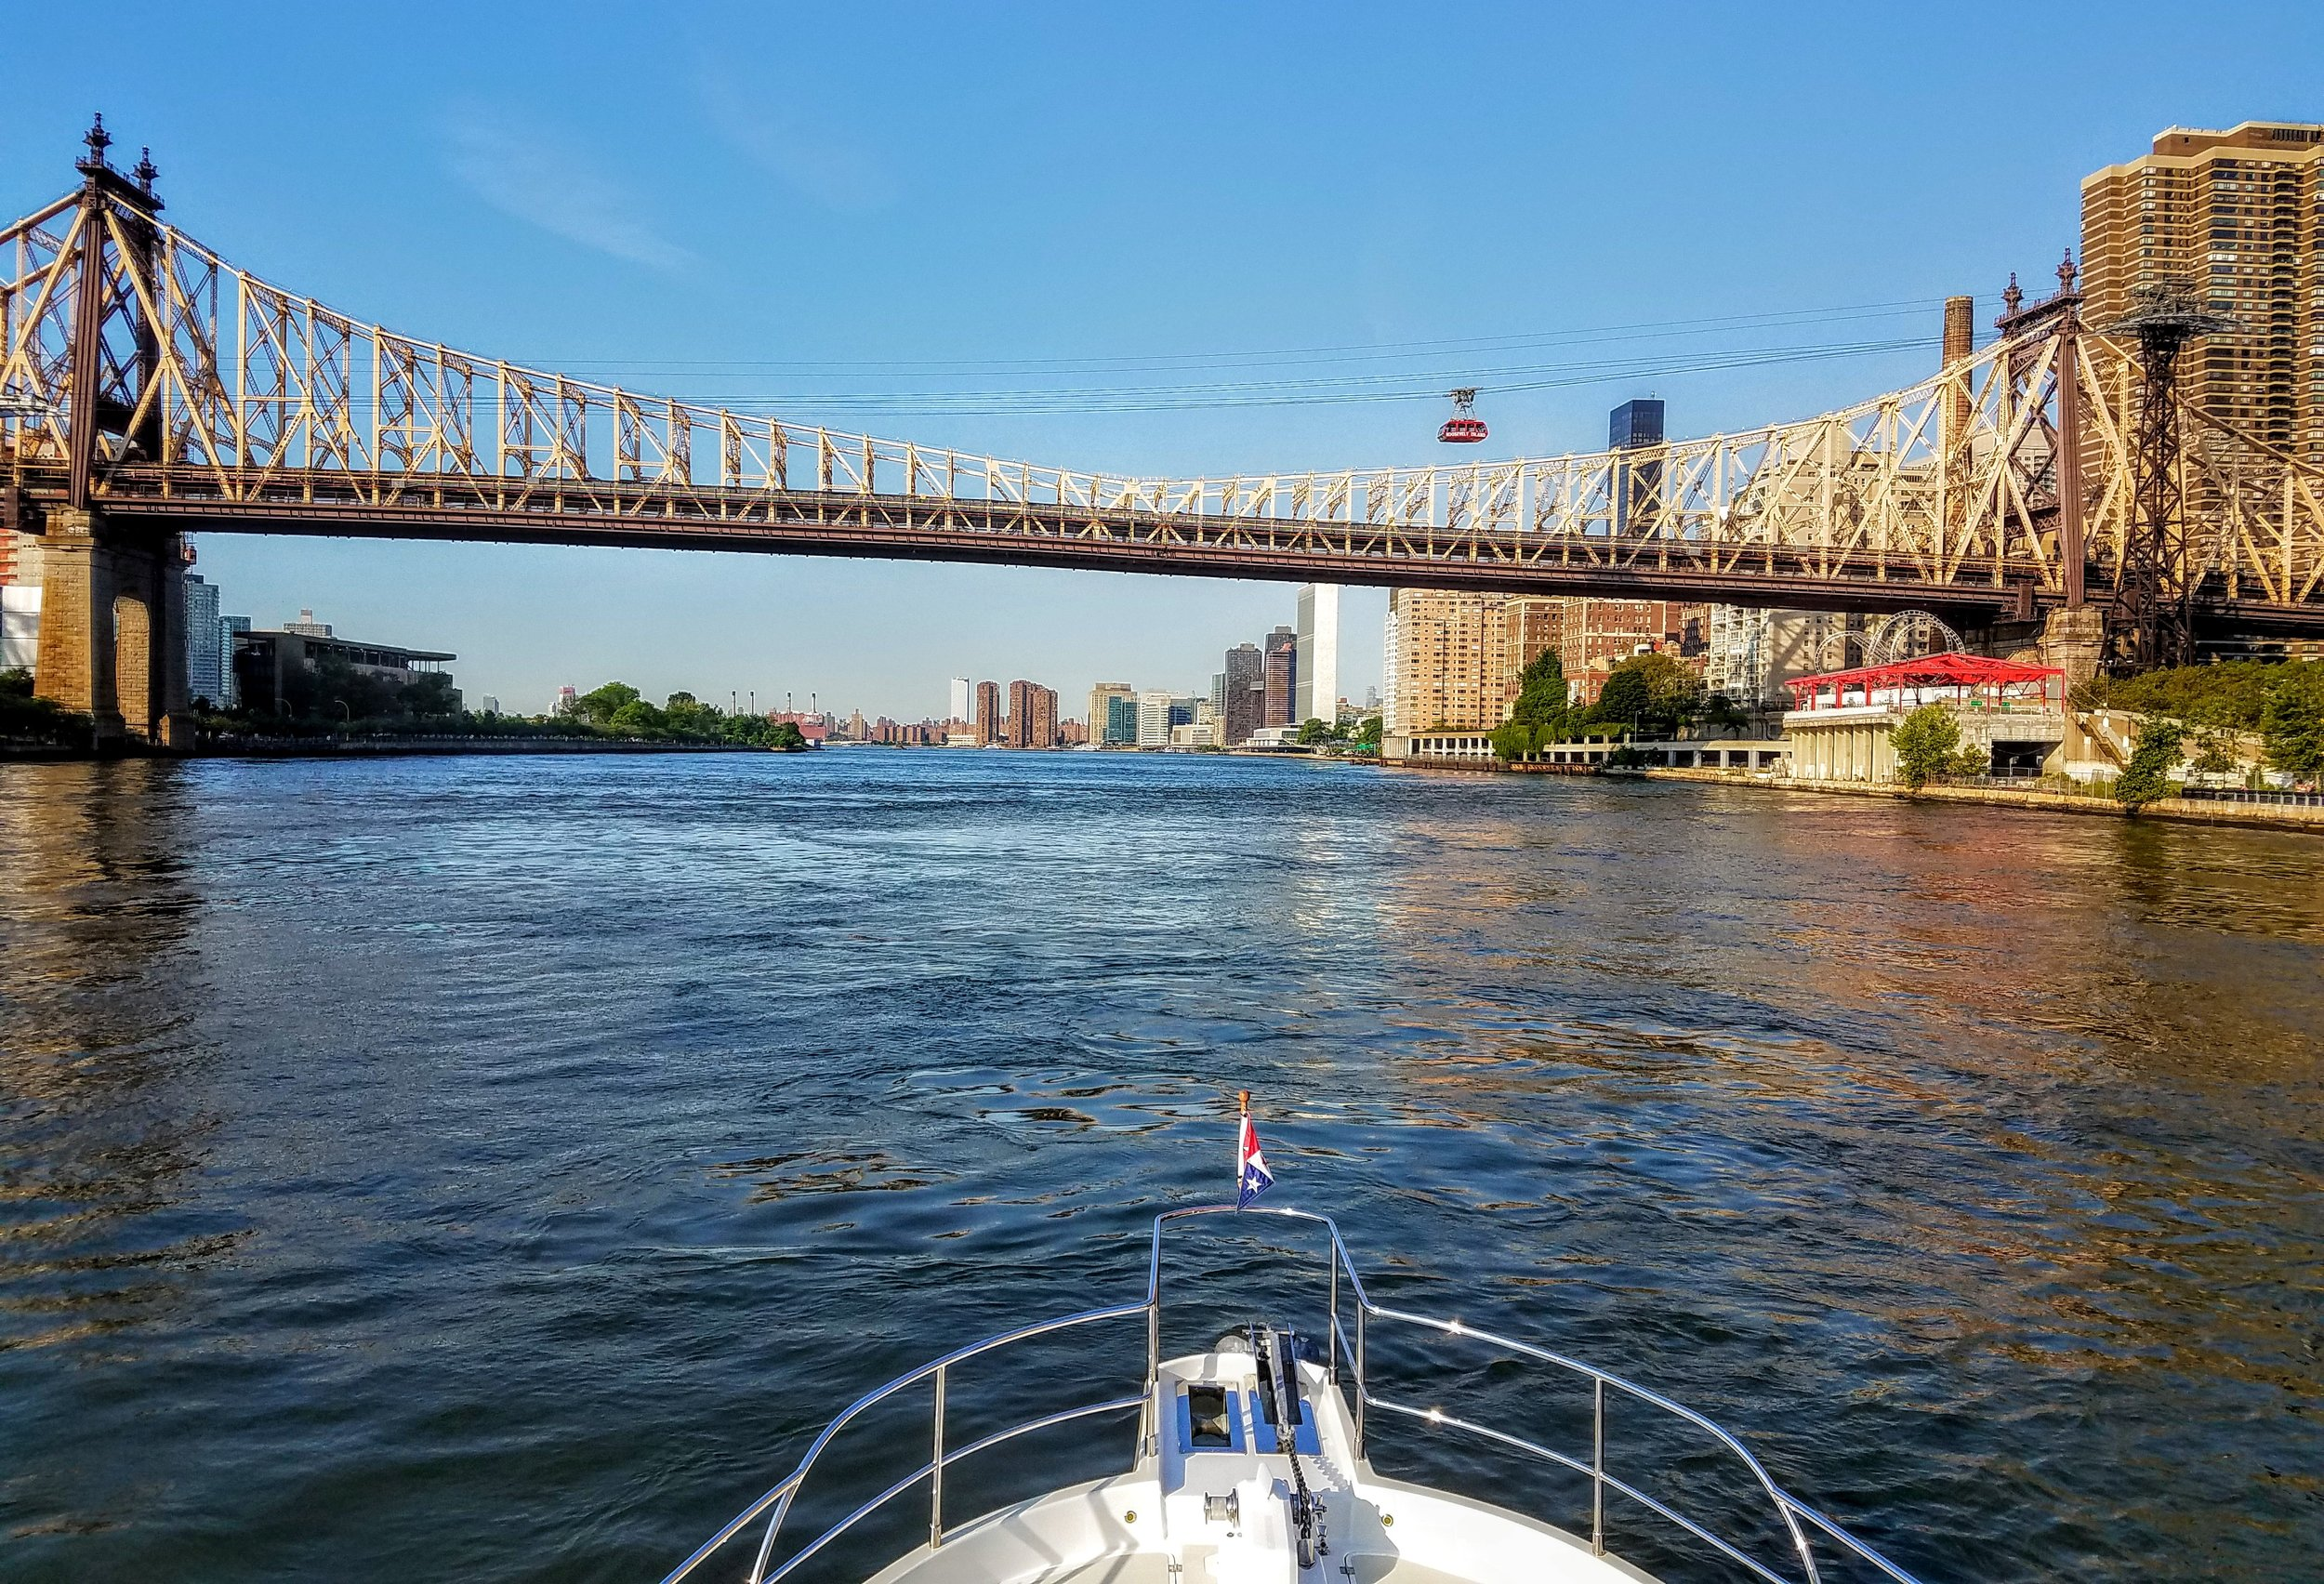 The East River and the tram to Roosevelt Island